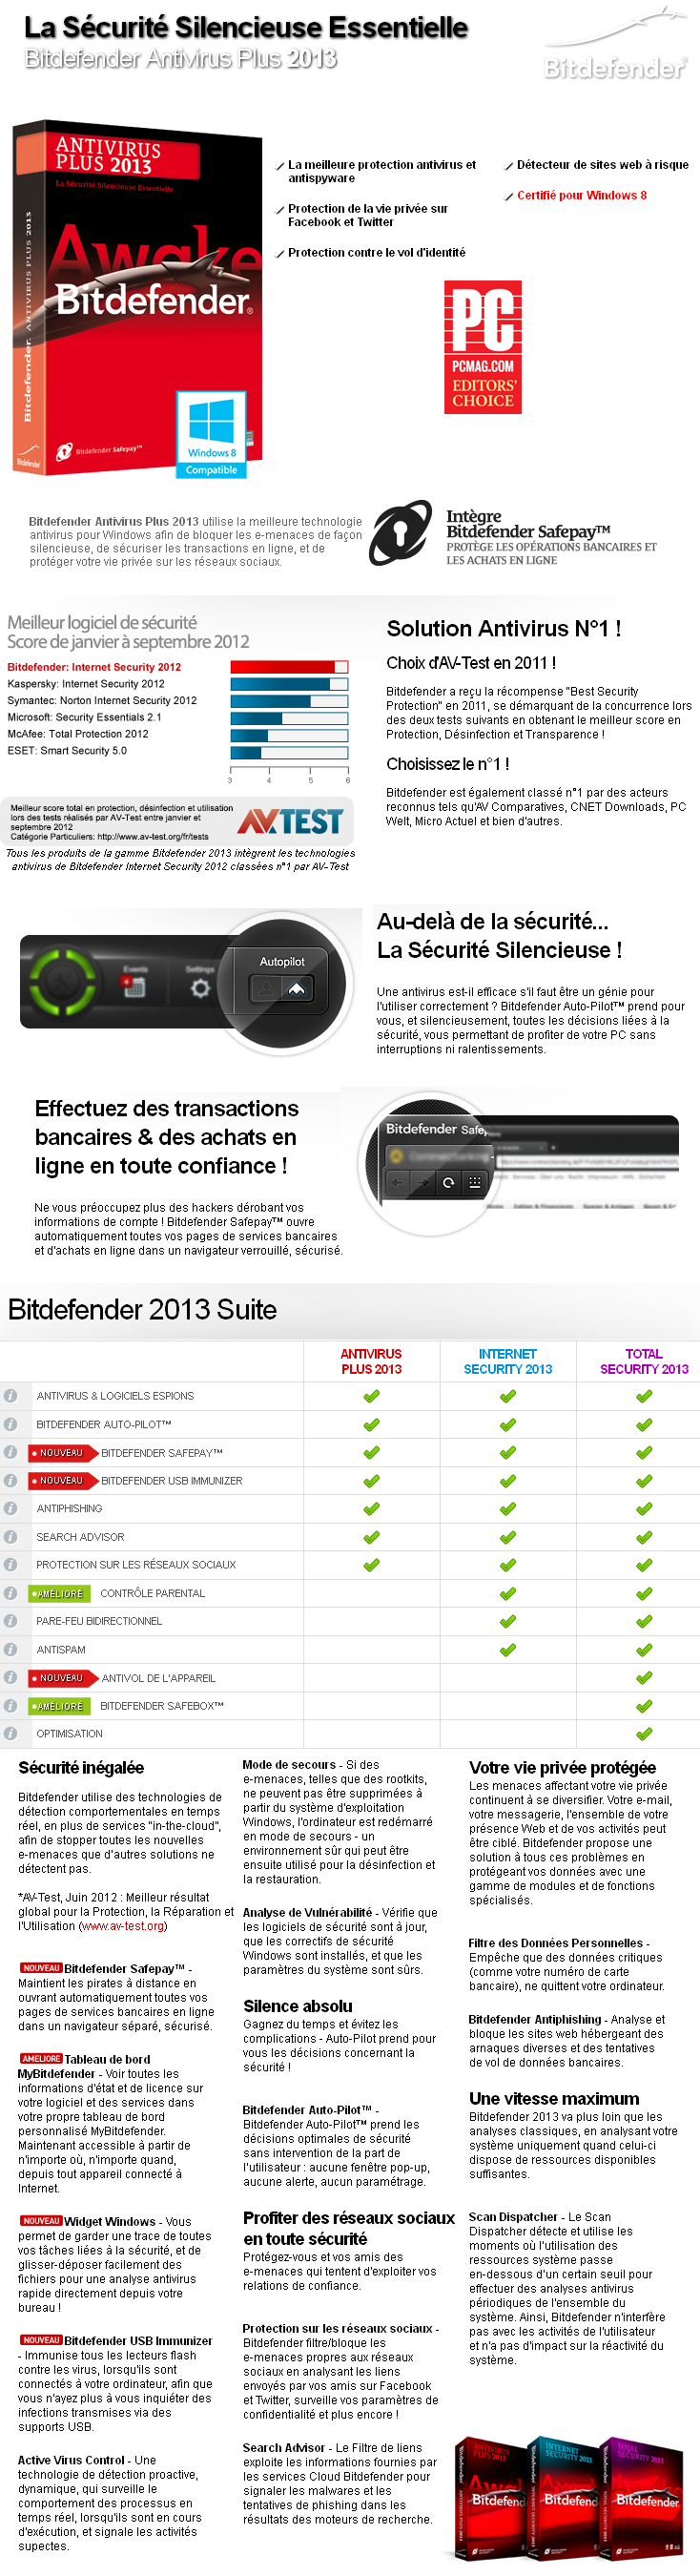 bitdefender antivirus plus 2013 dvd slim maroc. Black Bedroom Furniture Sets. Home Design Ideas